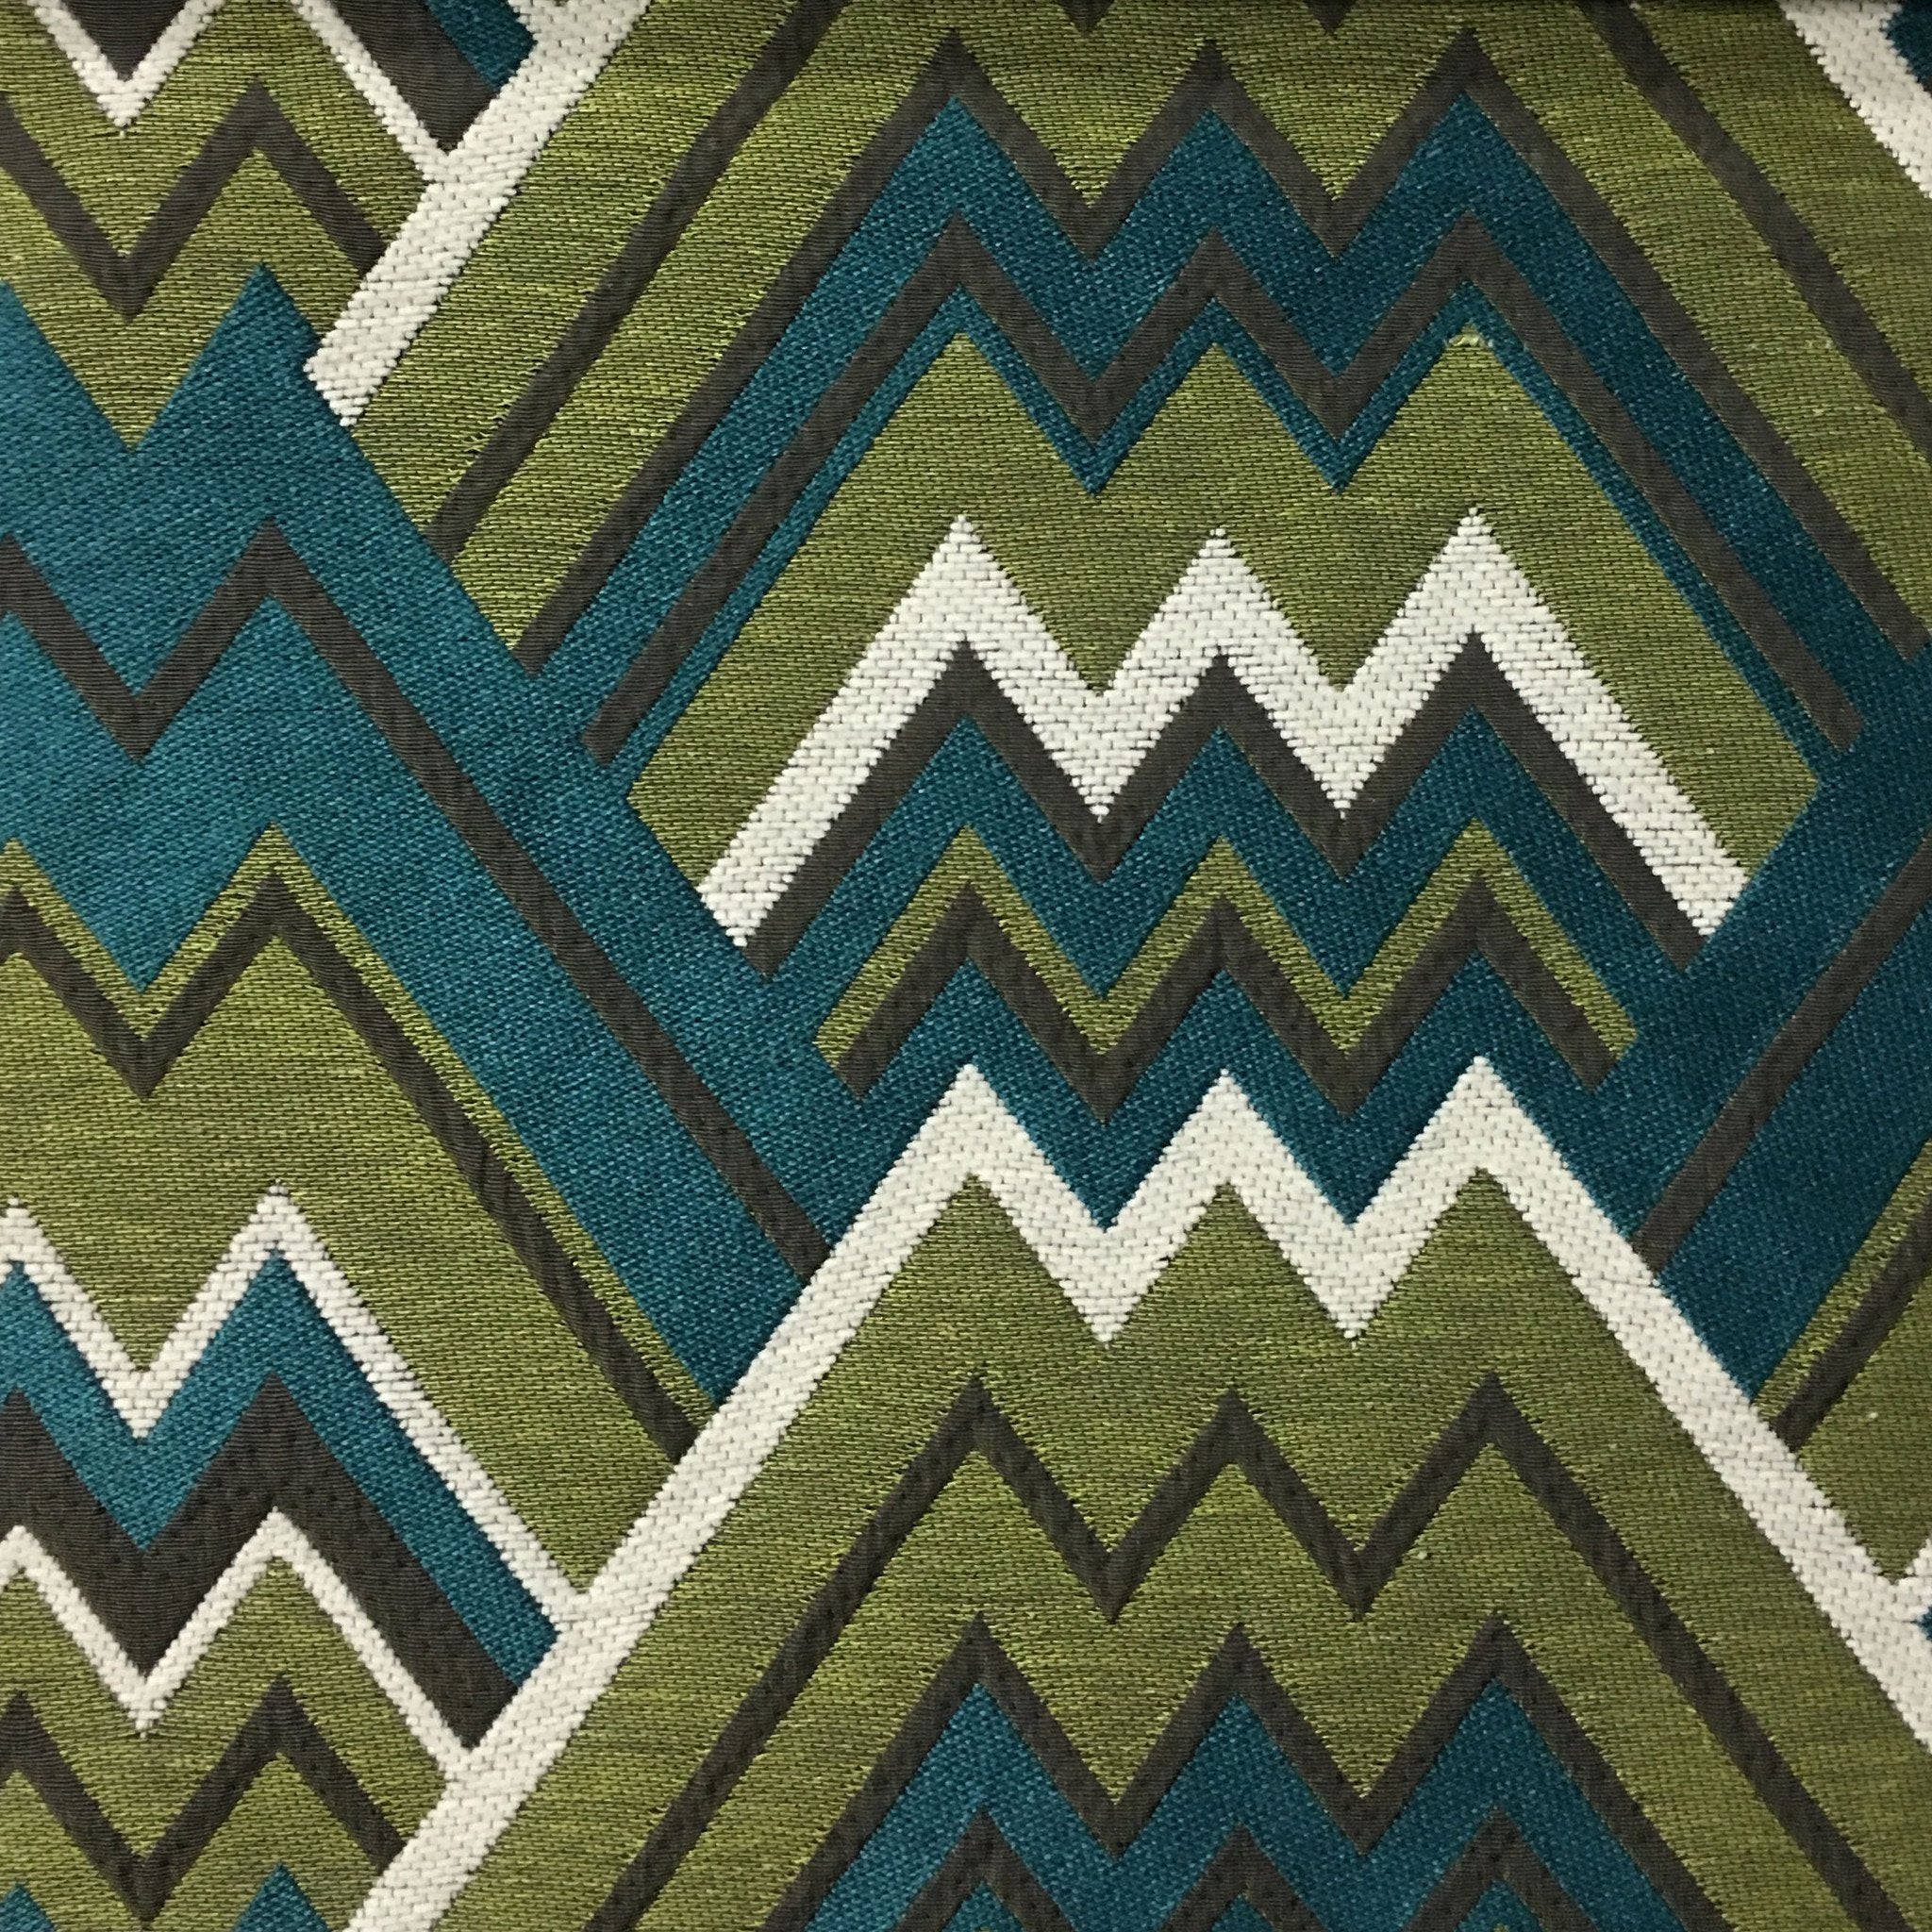 Upholstery fabric geometric design fabric home decor aqua blue -  Mesa Mixed Construction Geometric Pattern Cotton Blend Upholstery Fabric By The Yard Available In